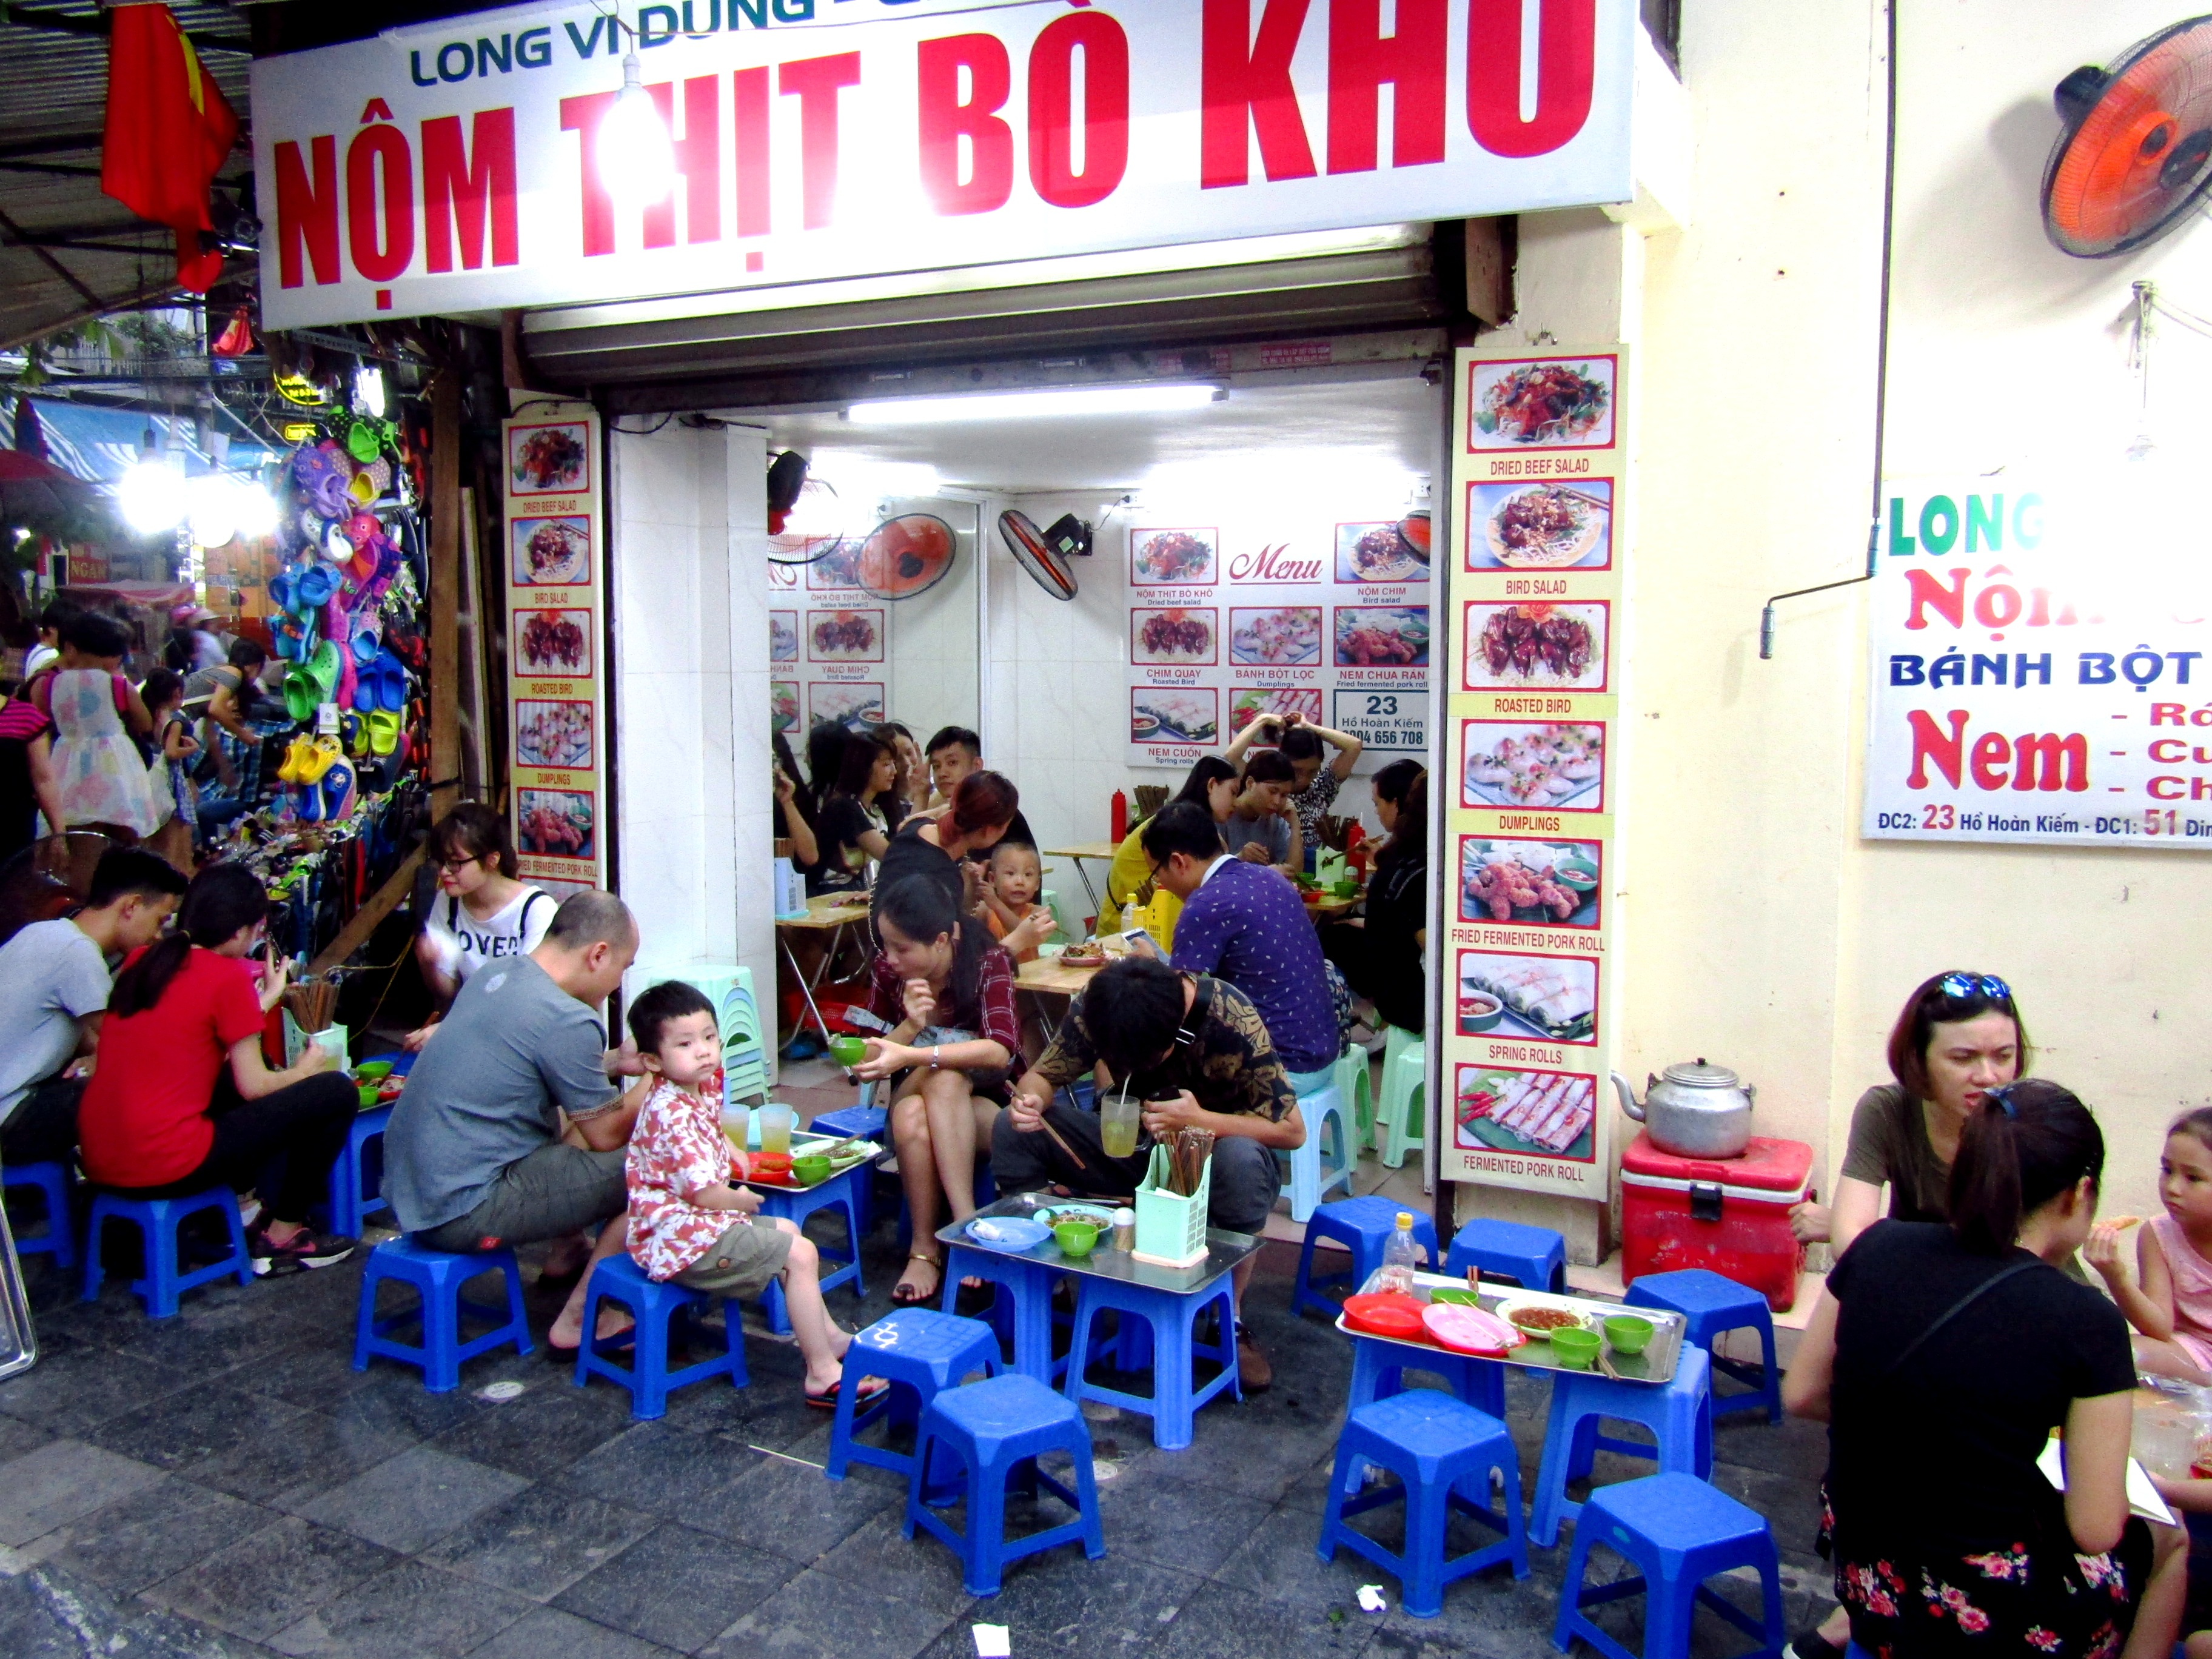 One of the many Vietnamese eateries lining the streets